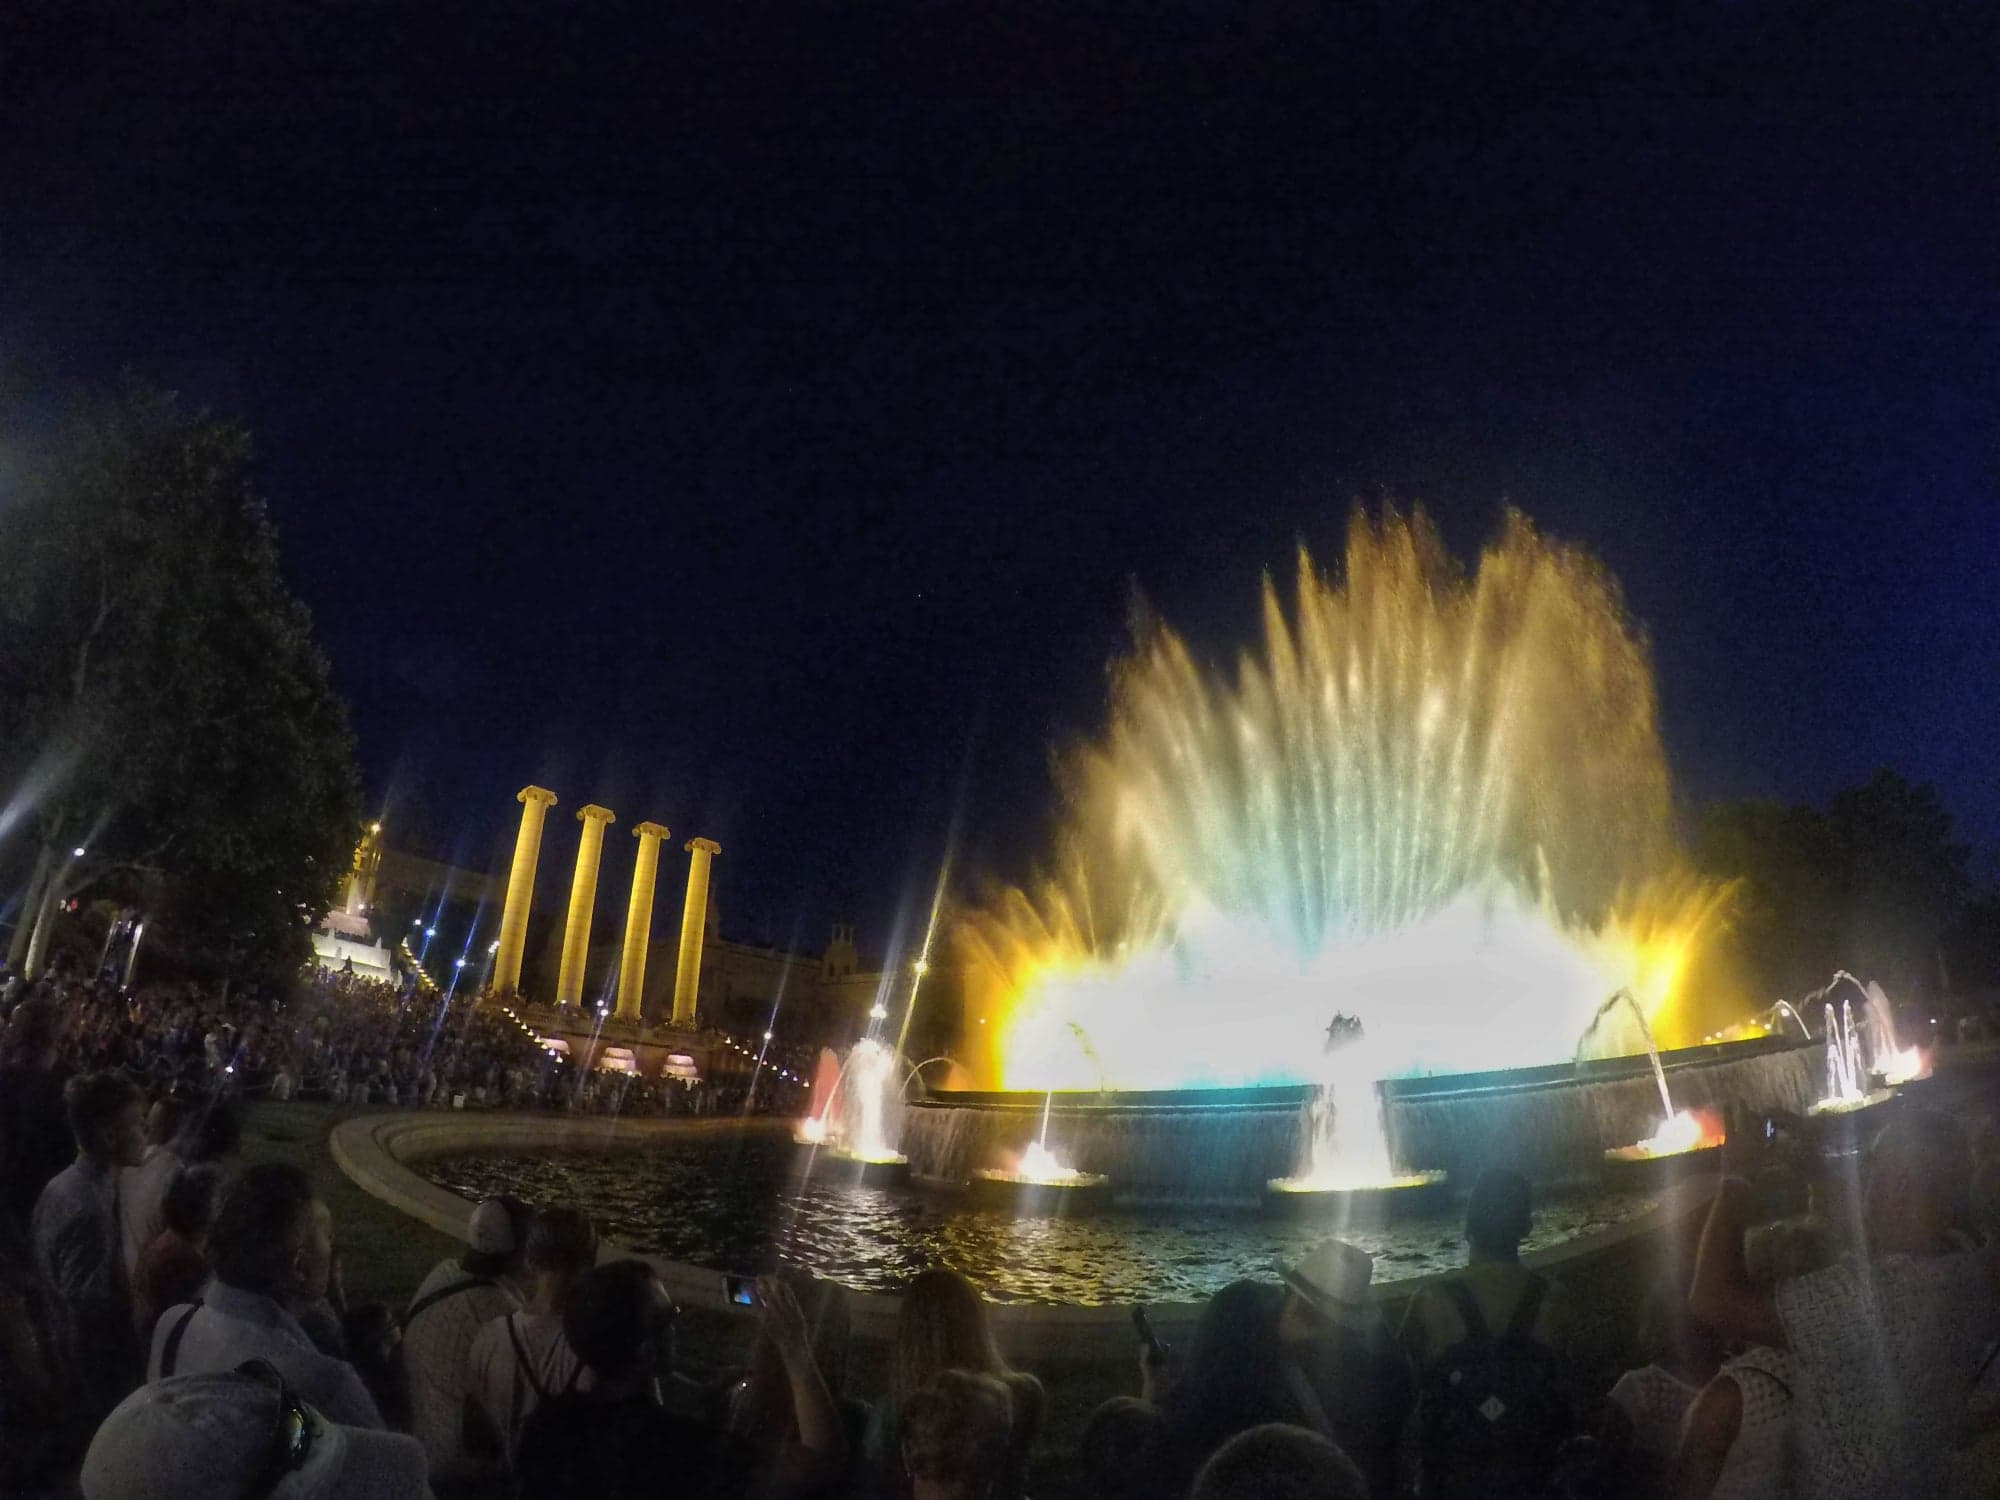 4 days in Barcelona - Magic Fountain night show